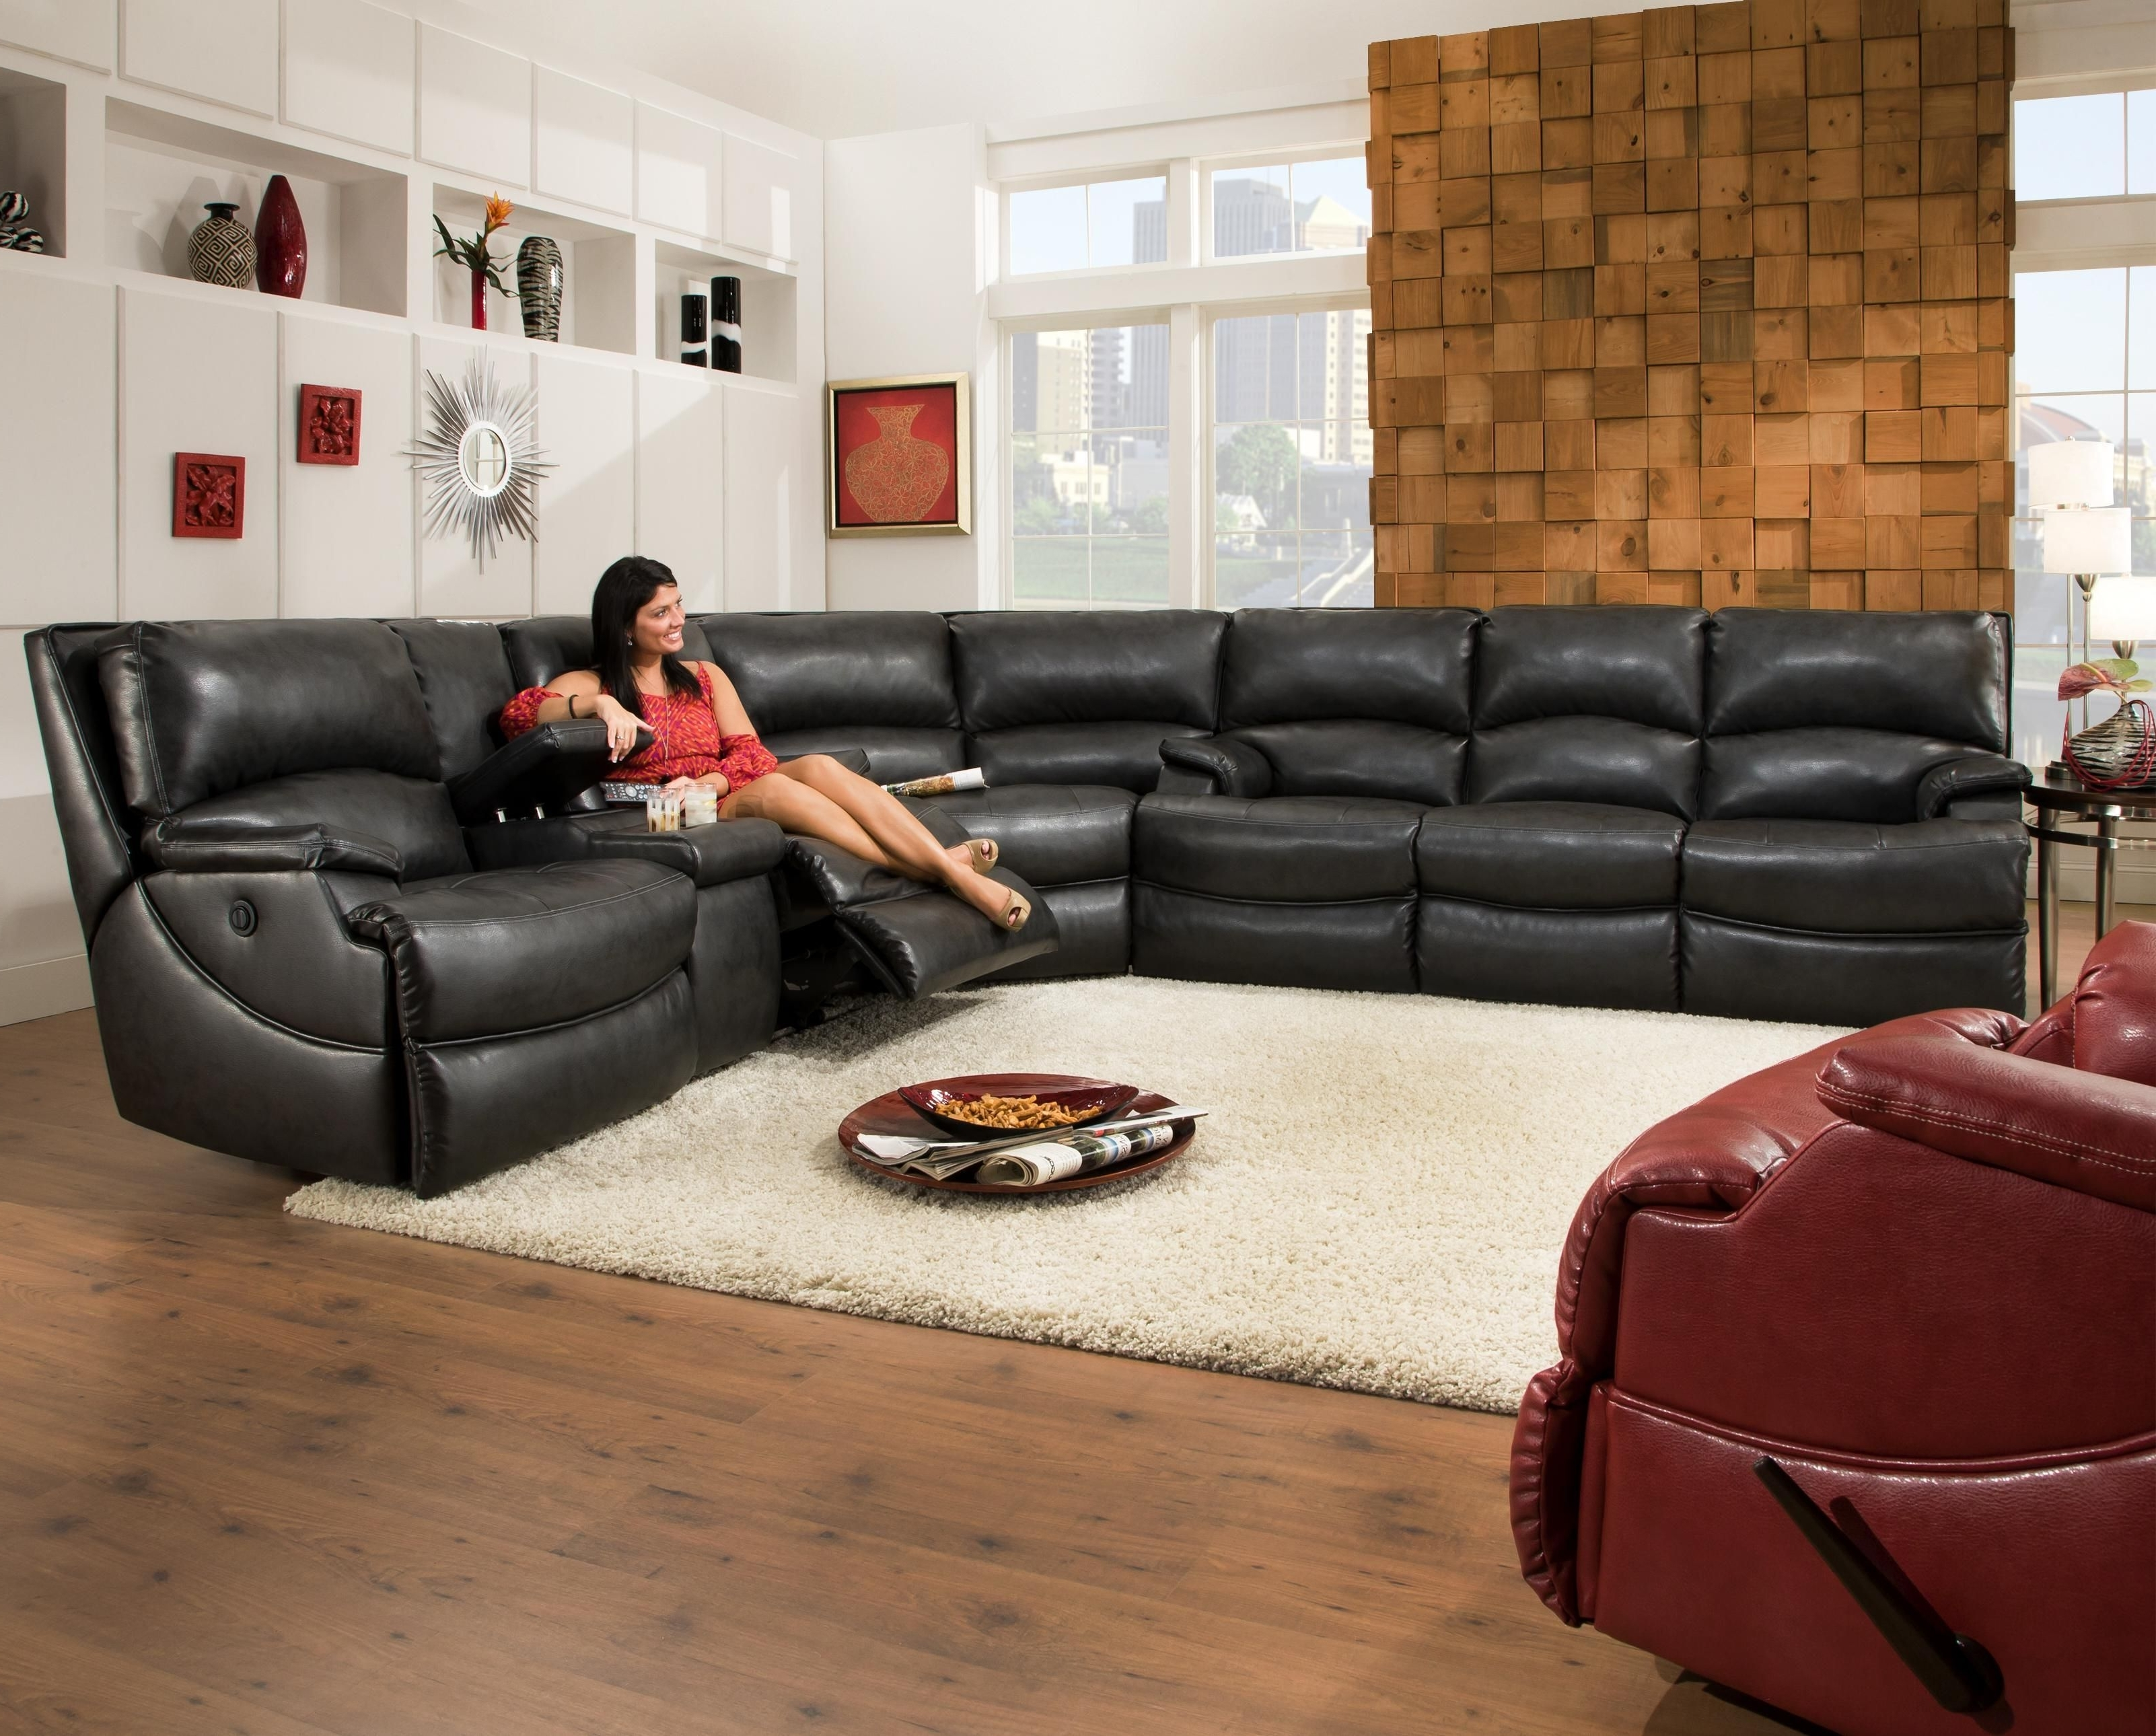 Fashionable Sectional Sofas With Consoles Pertaining To Southern Motion Shazam Six Seat Reclining Sectional Sofa With Cup (View 5 of 20)